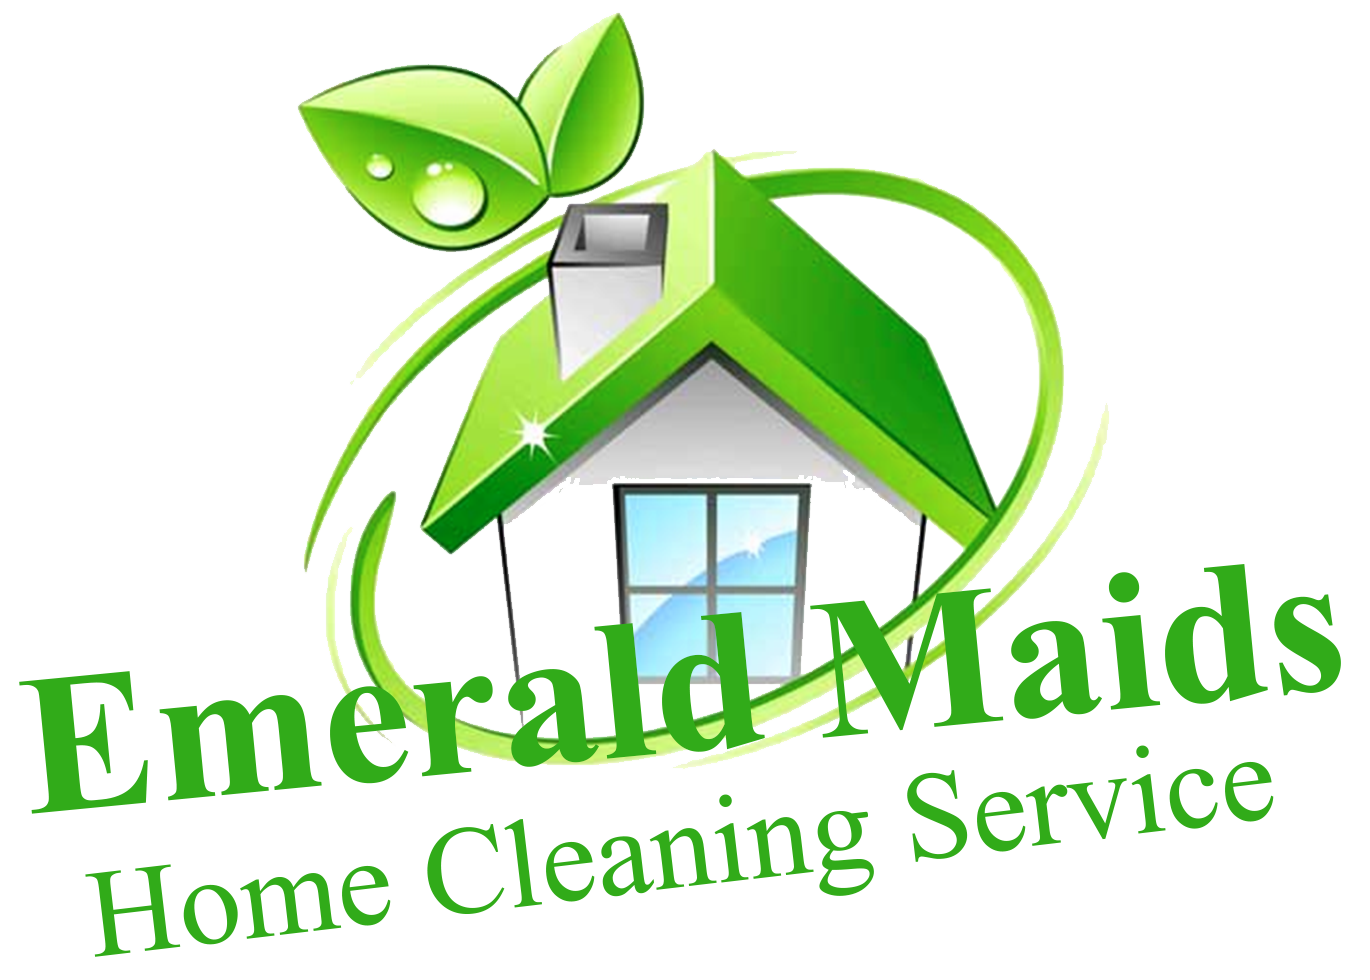 emerald maids home cleaning service home emerald maids